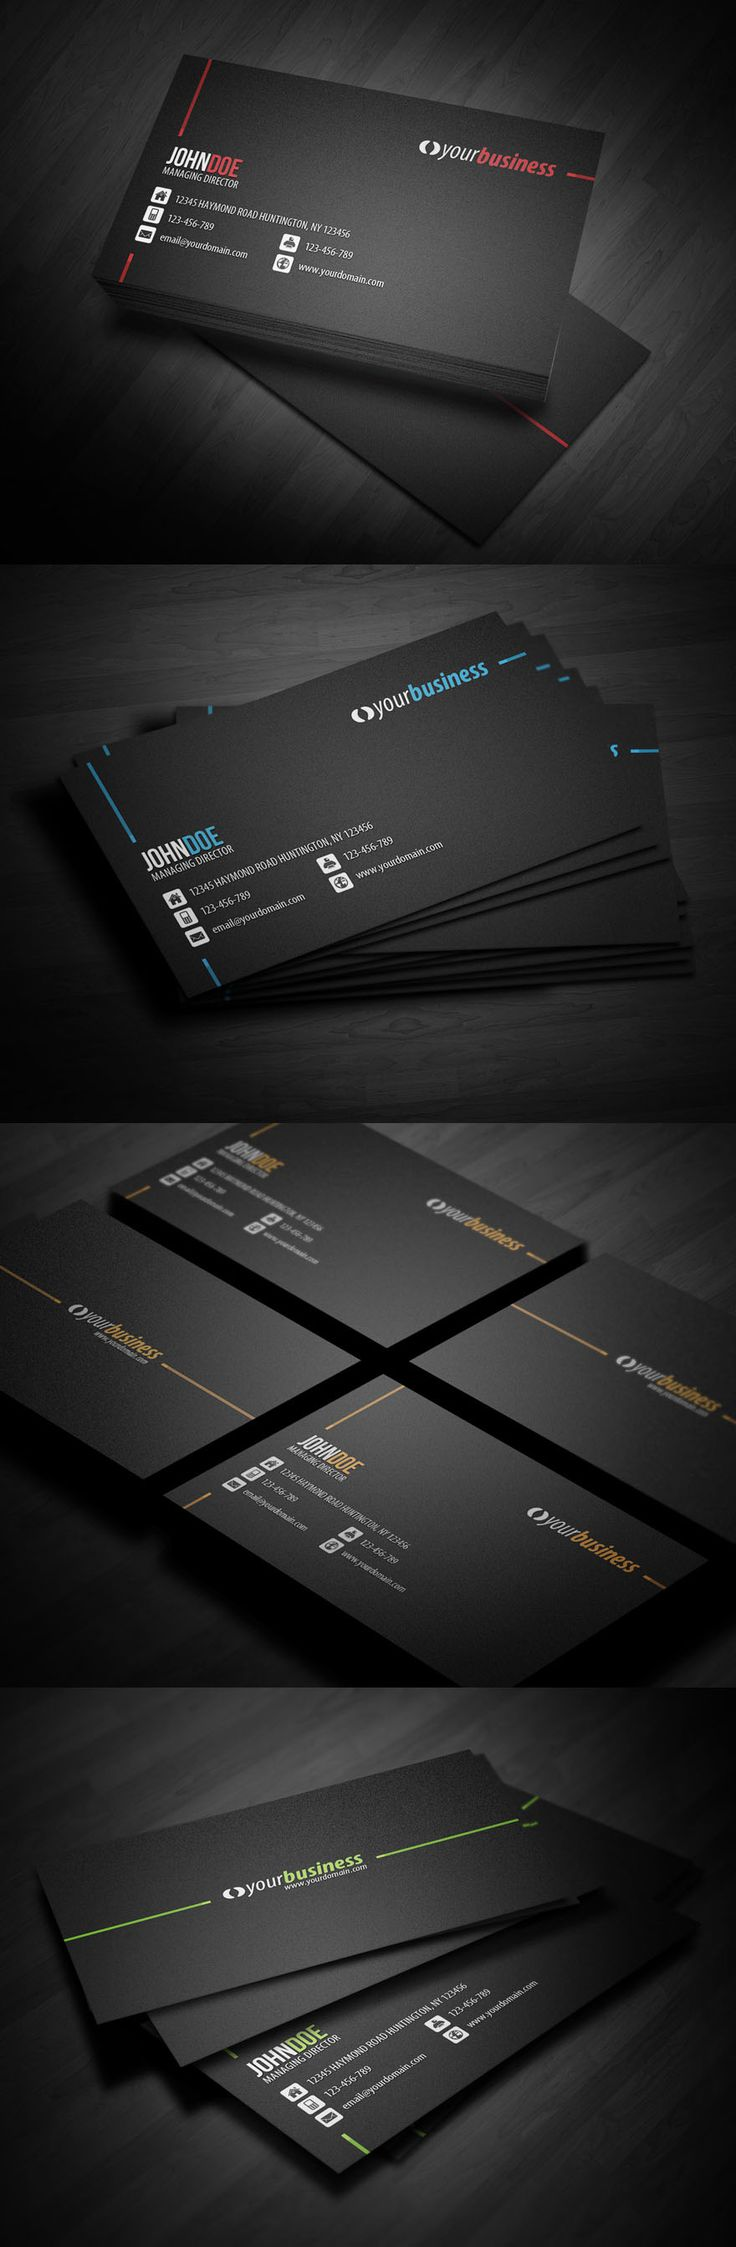 102 best business card design images on pinterest business card 25 creative corporate themed business card design examples follow us pinterest reheart Image collections